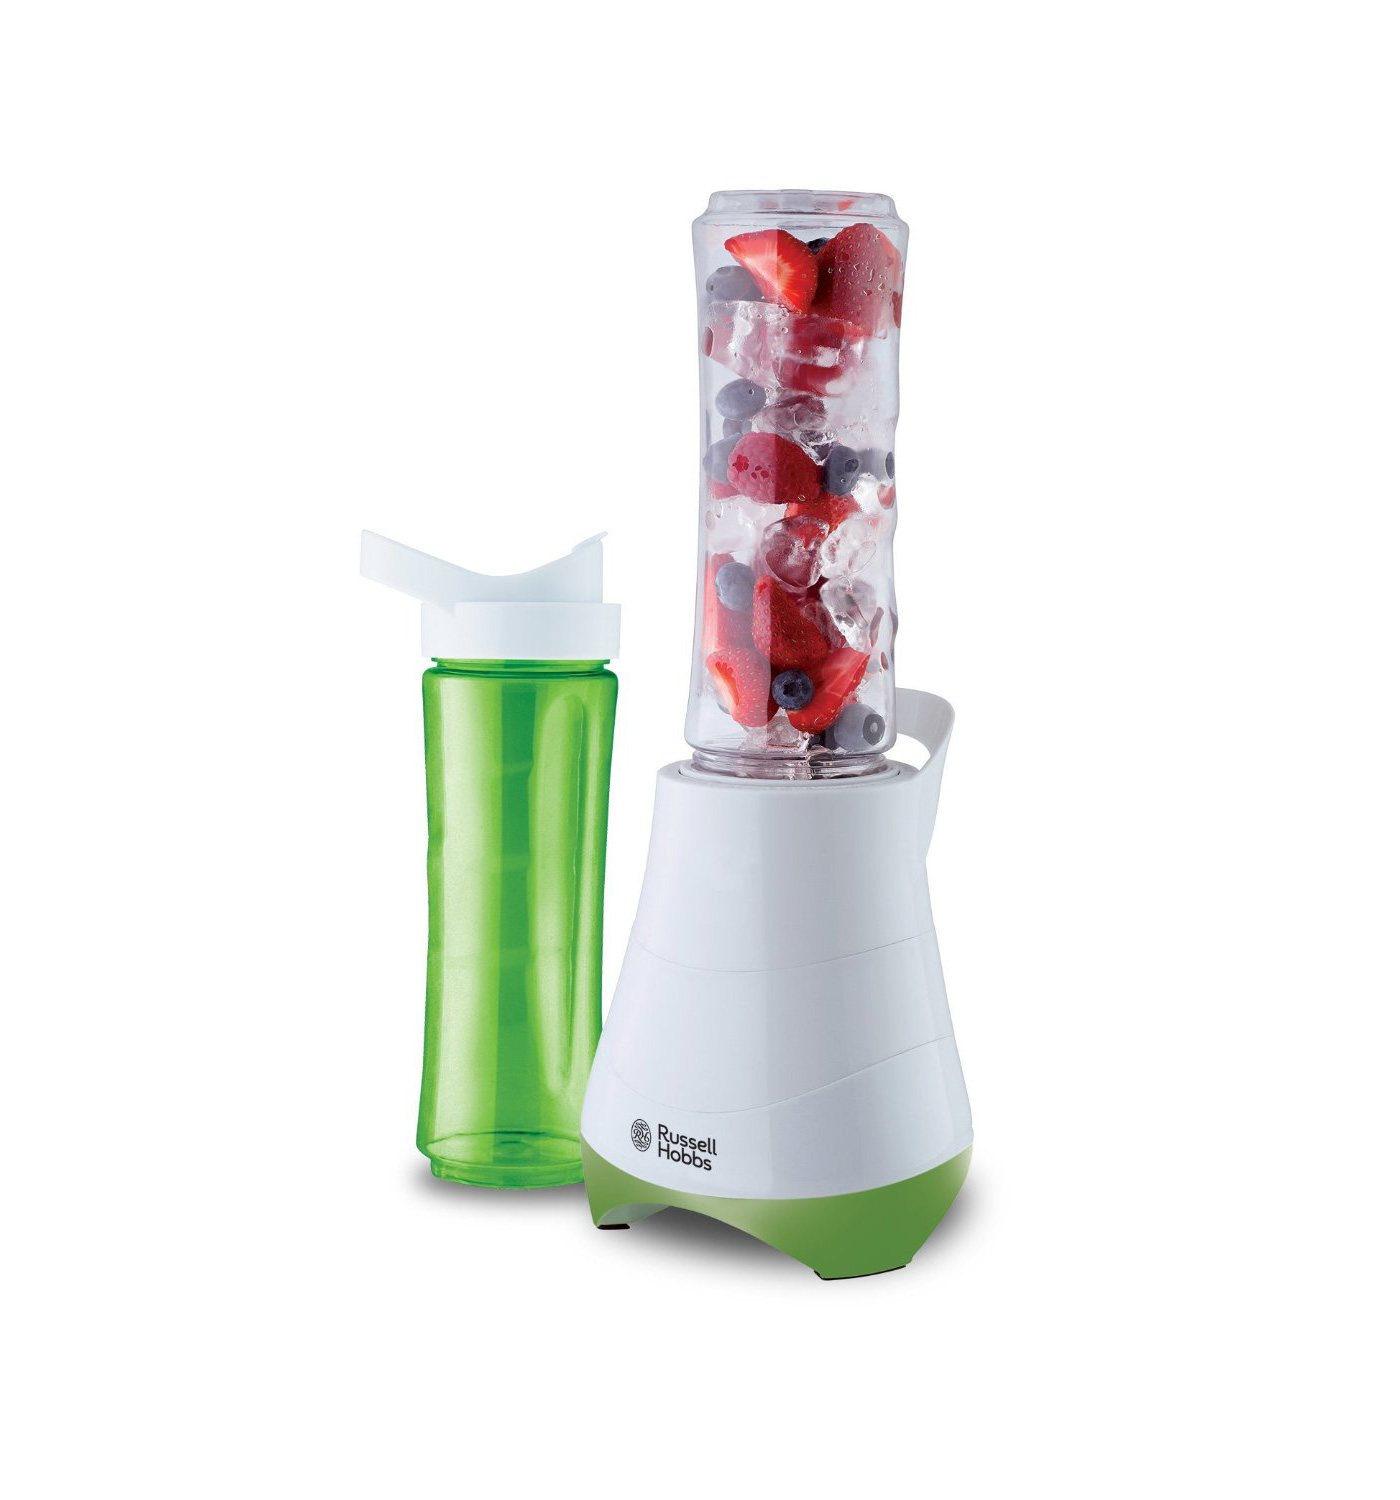 Russell Hobbs Smoothie Mixer